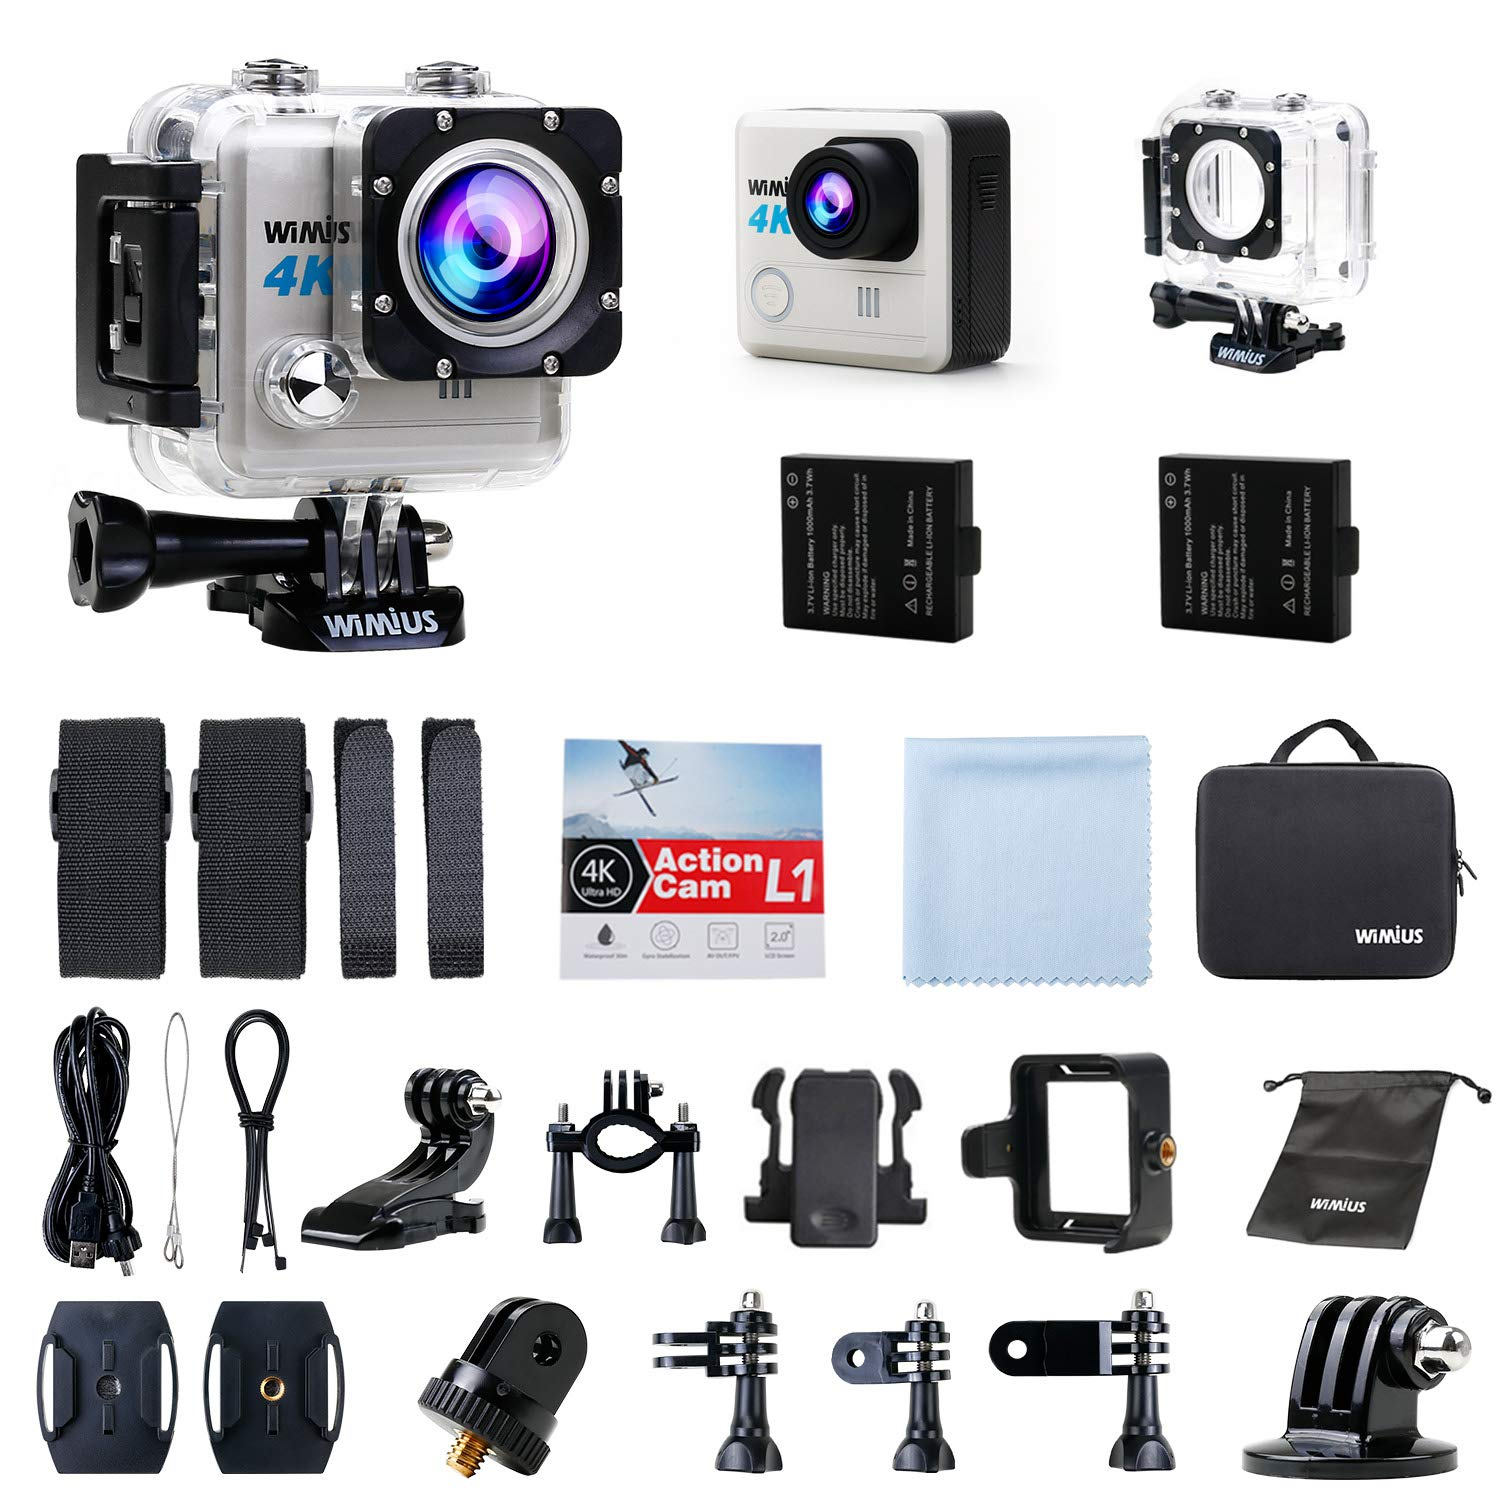 Action camera Wimius L1 ULTRA HD 4K, 20 MP, WI-fi Accesories